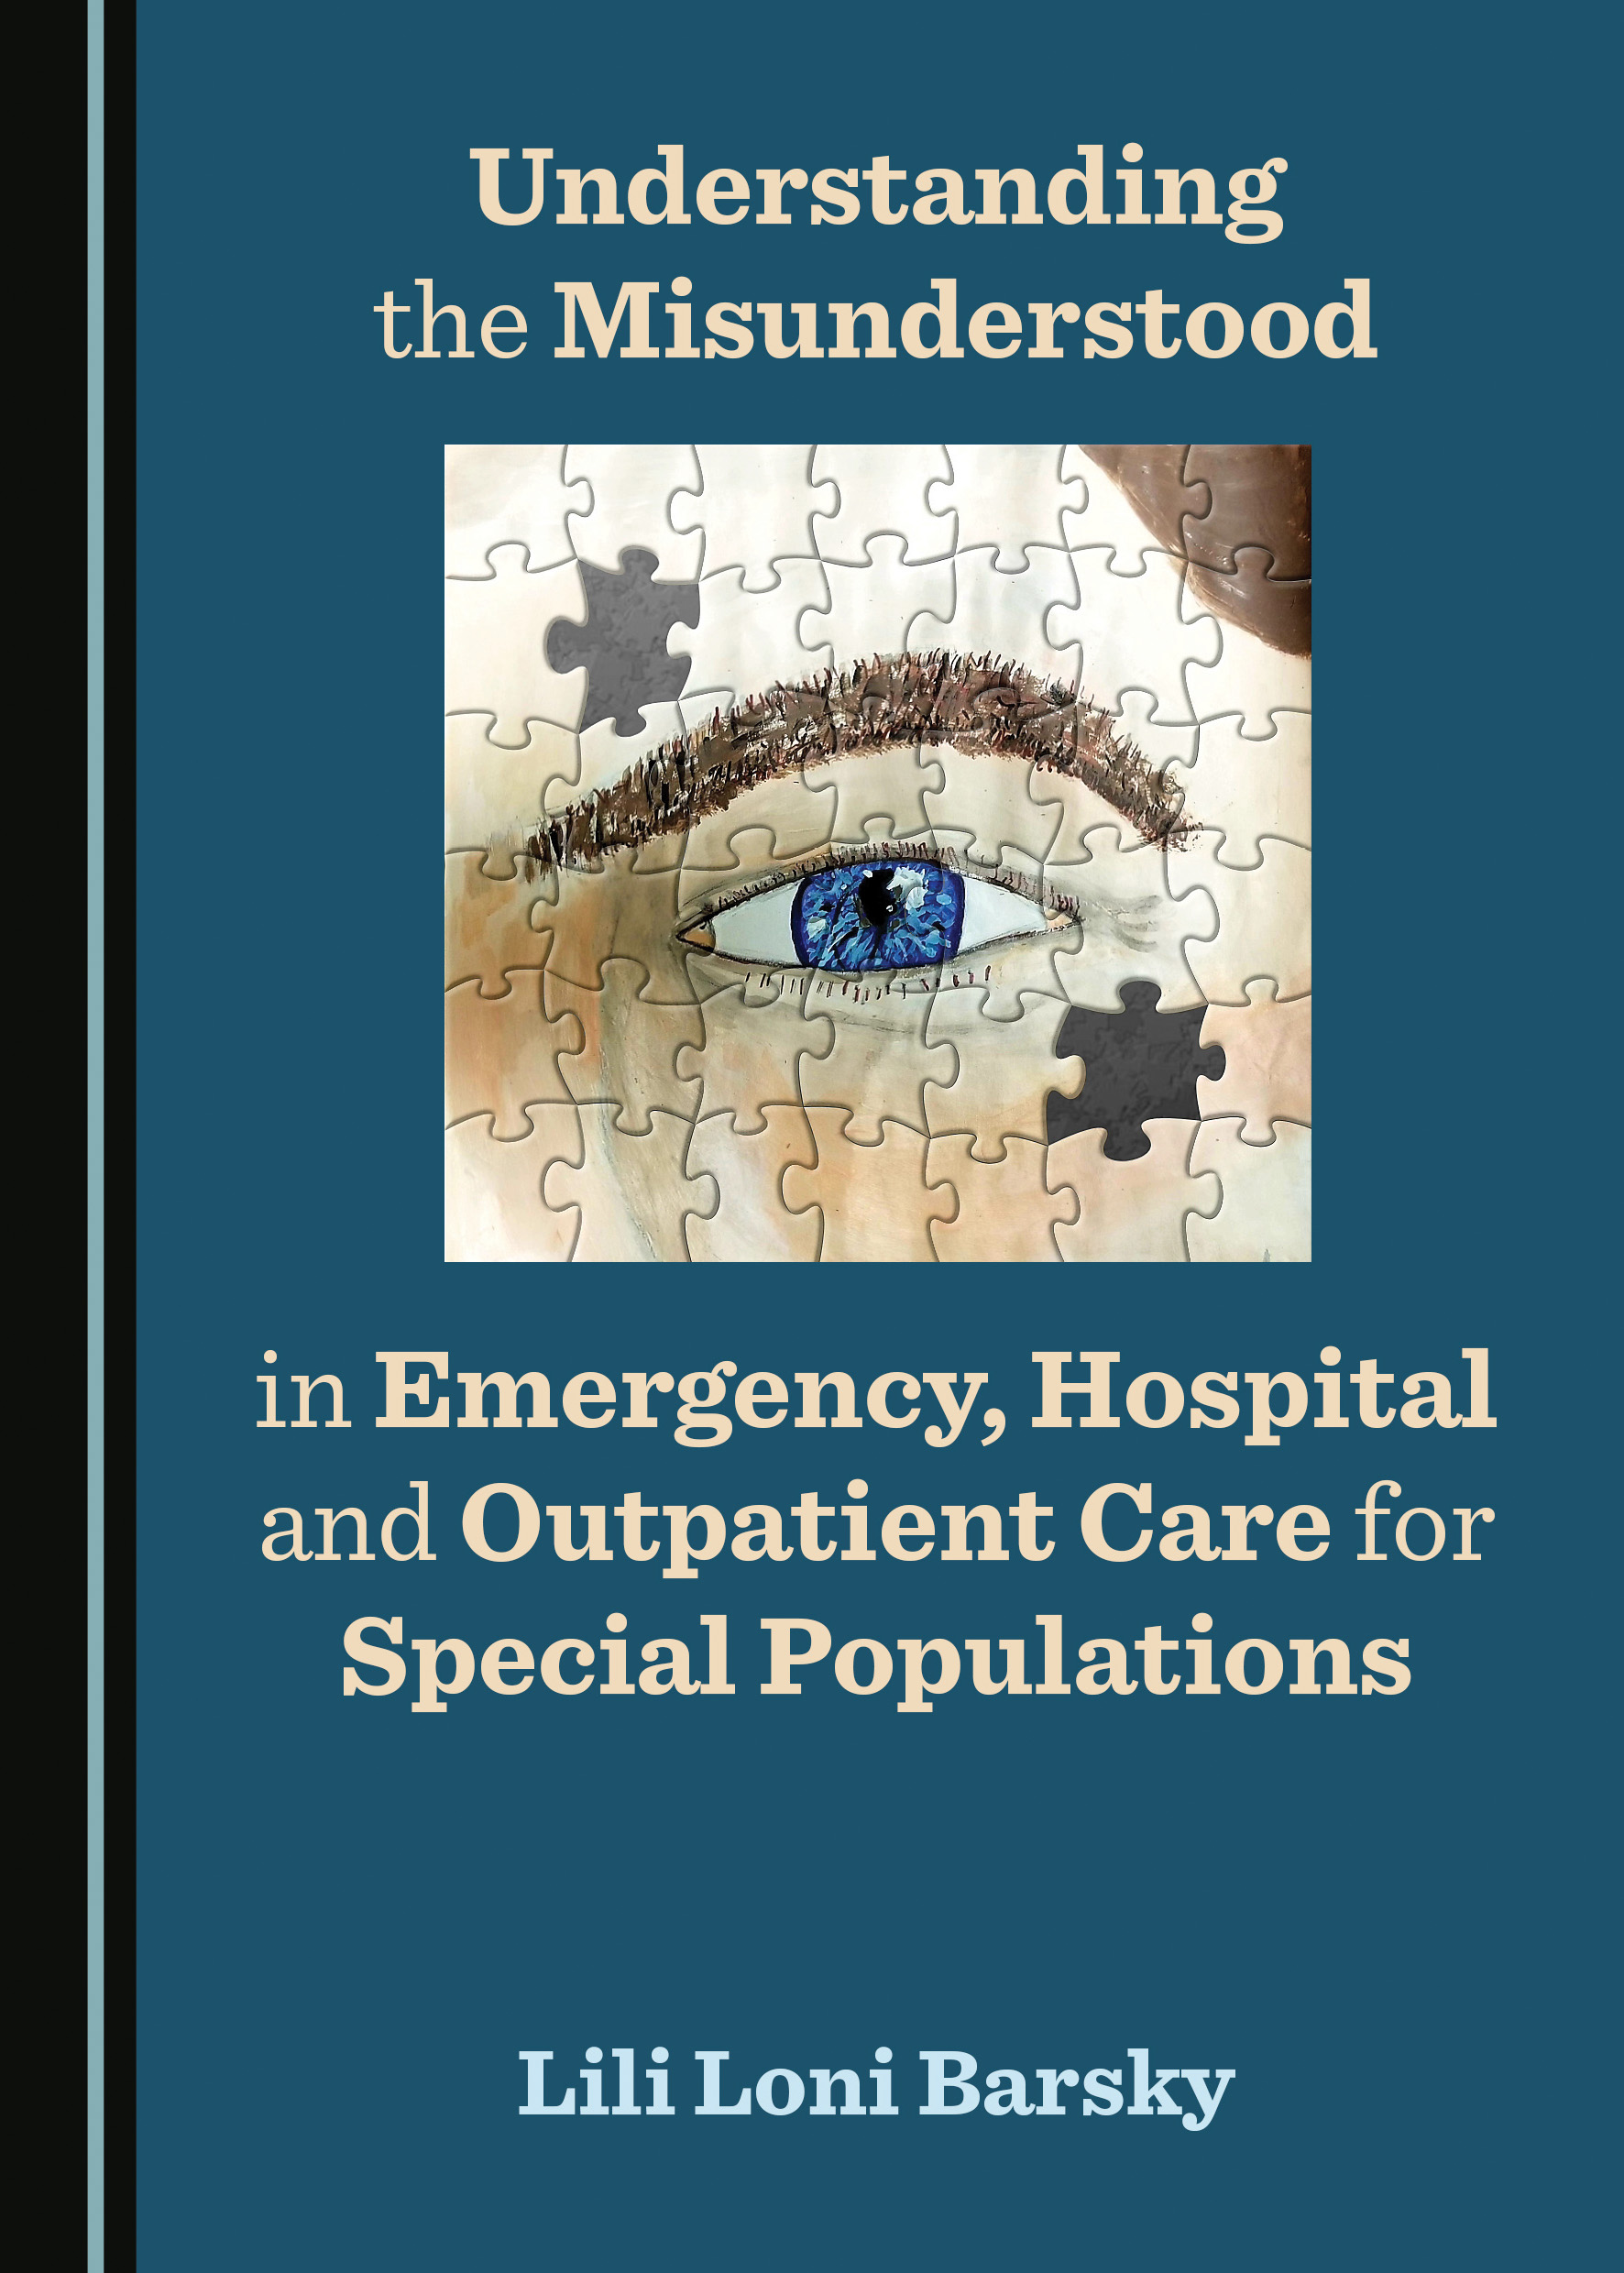 Understanding the Misunderstood in Emergency, Hospital and Outpatient Care for Special Populations